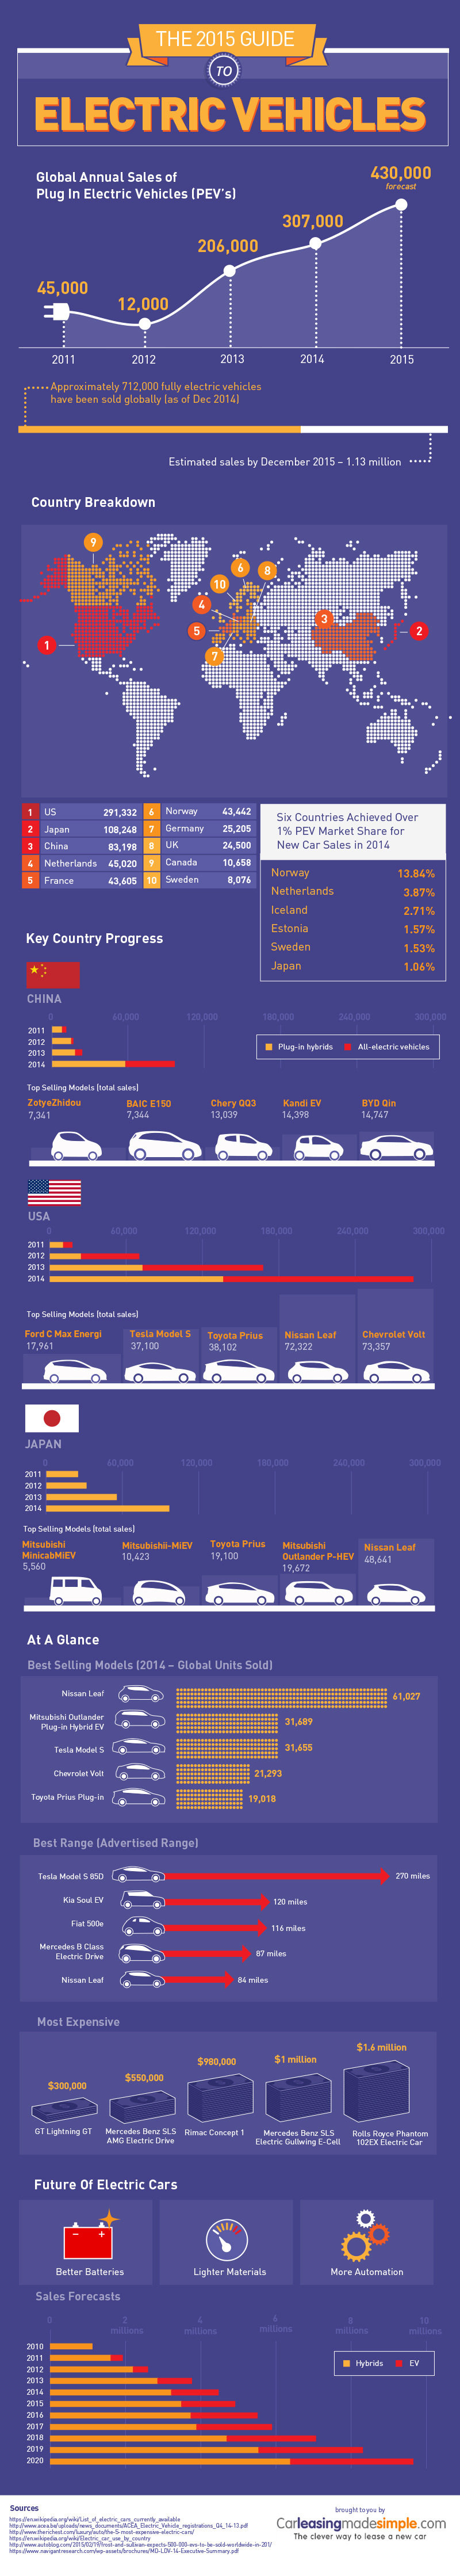 2015 Guide To Electric Cars